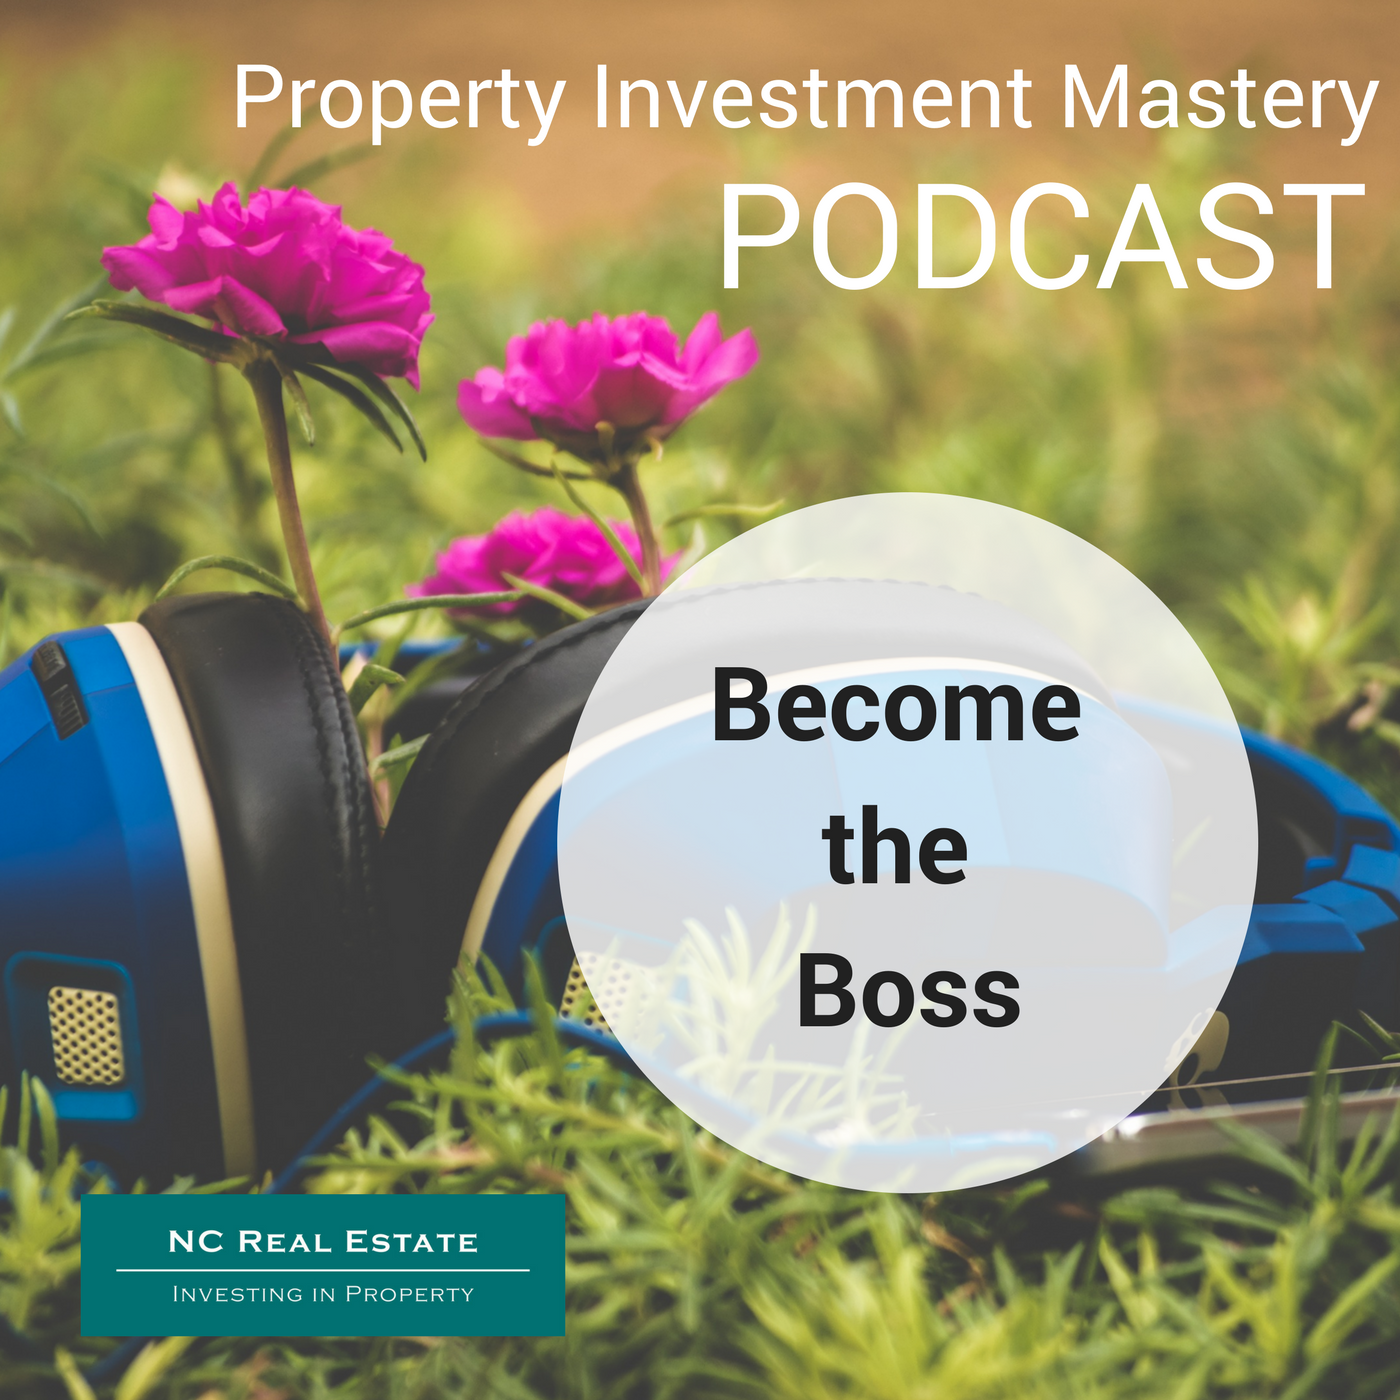 become boss, property, investing, NC Real Estate. Podcast